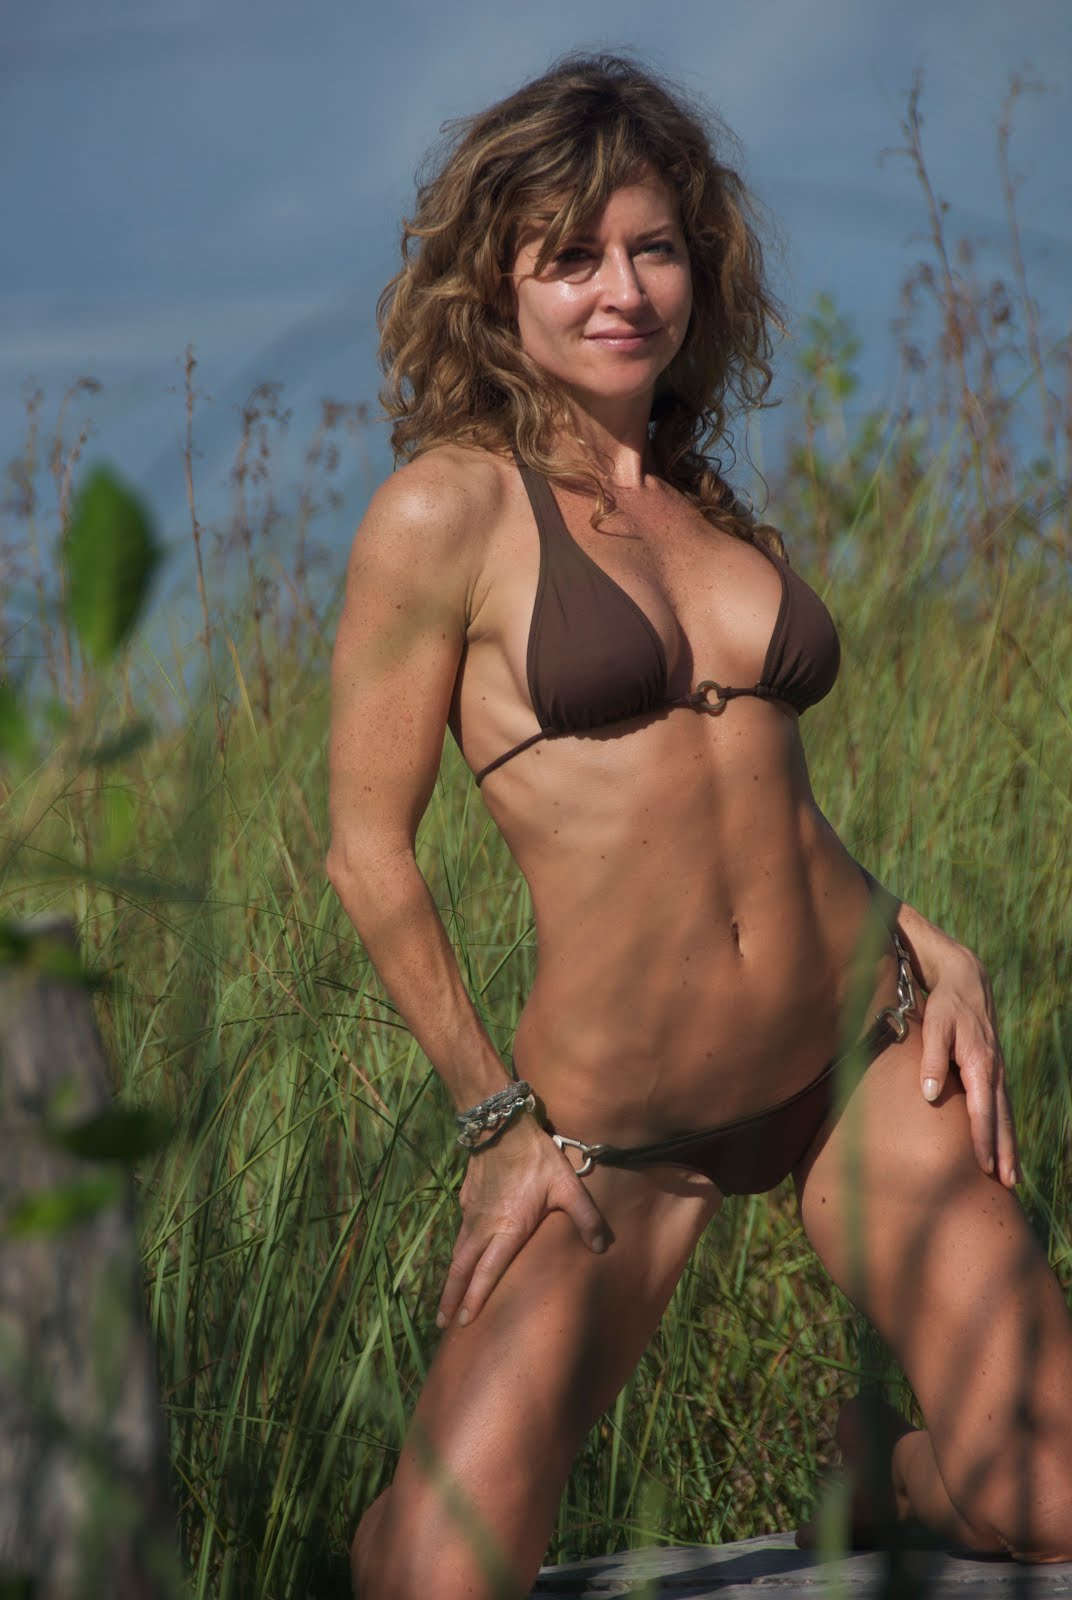 Older Fitness Models : older, fitness, models, Weights…